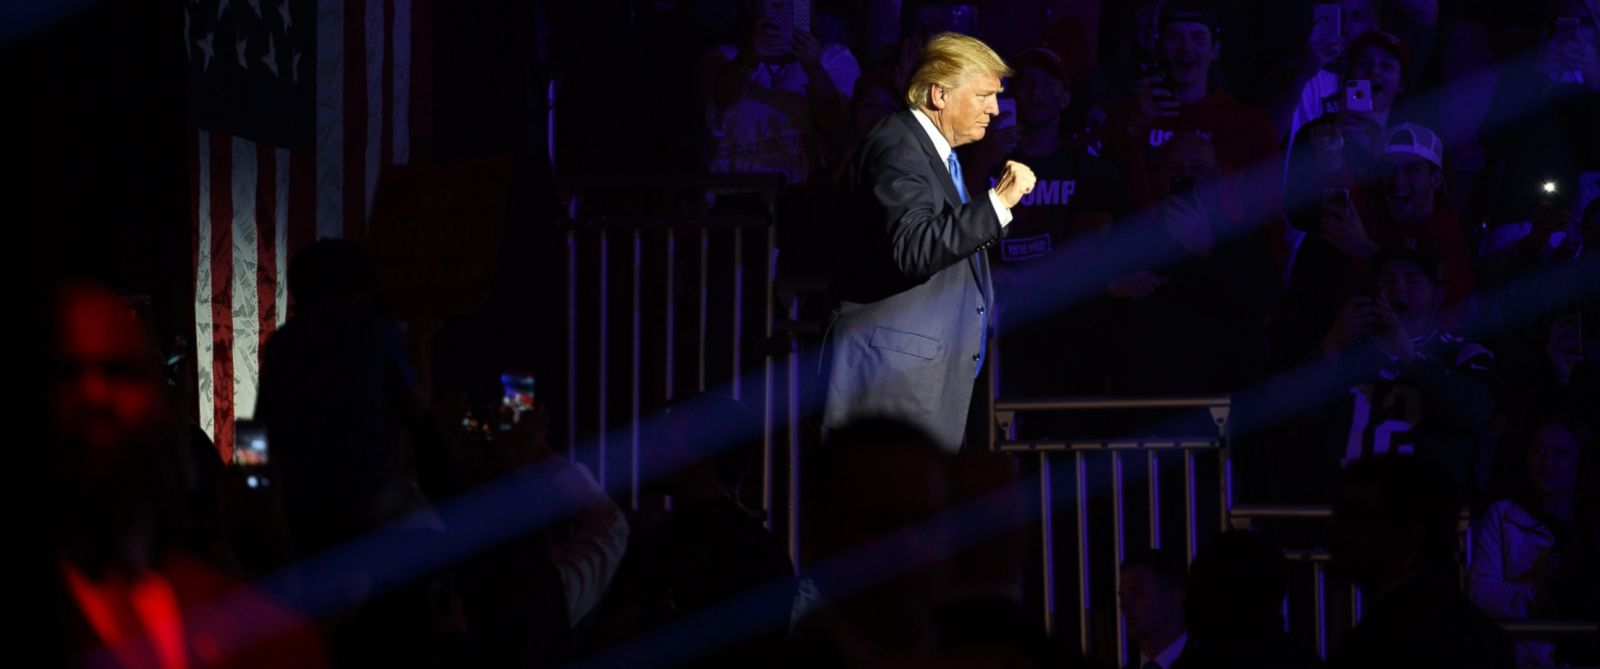 PHOTO: Donald Trump arrives for a campaign rally, Nov. 7, 2016, in Manchester, New Hampshire.